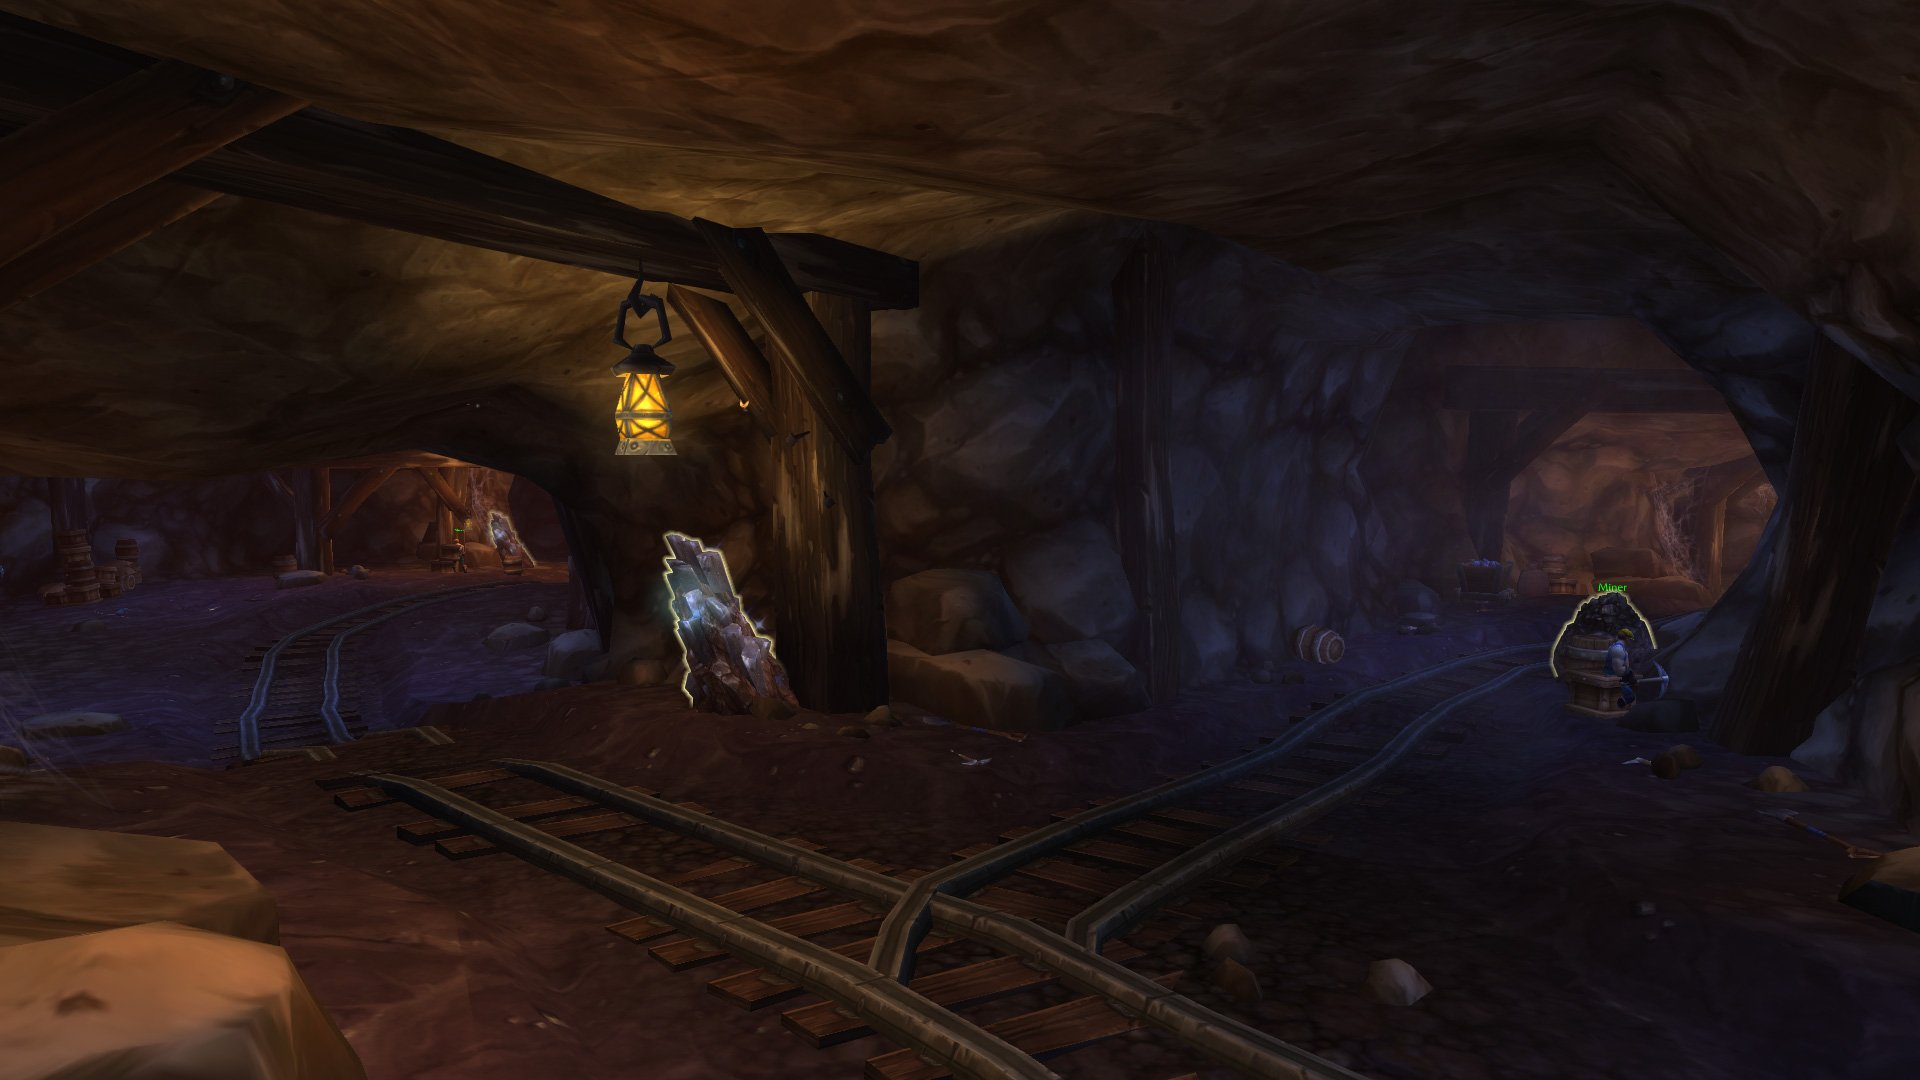 Warlords of draenor garrisons lunarfall excavation frostwall level 3 screenshots malvernweather Images